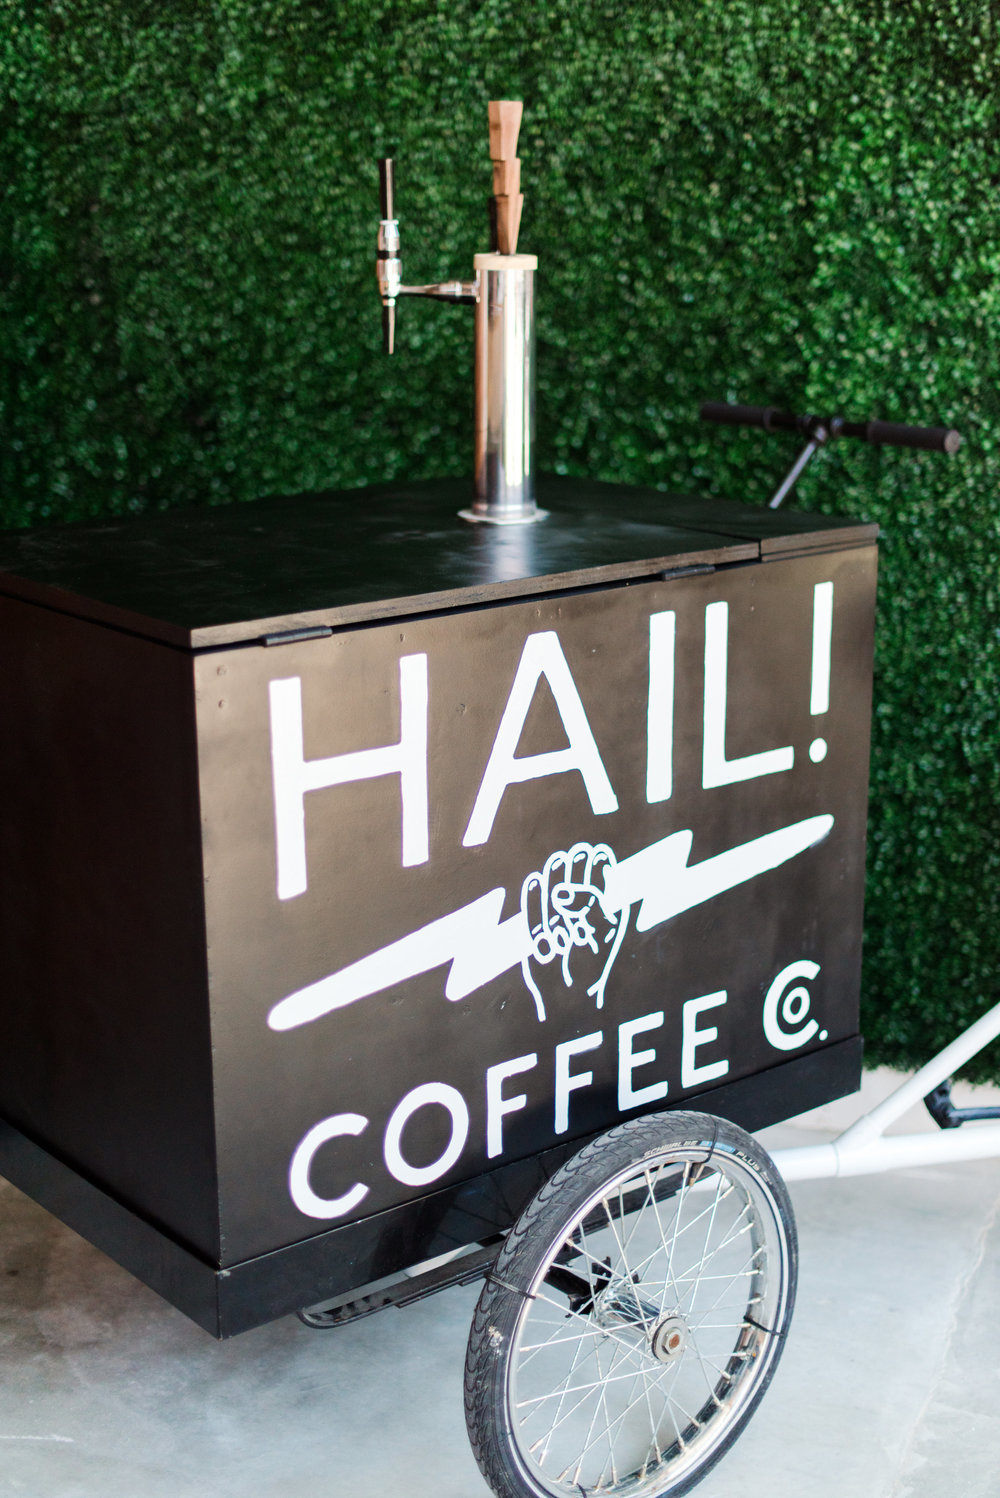 Hail Coffee Co. - Three words. COFFEE. ON. TAP. If you haven't tried Nitro Coffee yet (or, hellooo, their new Nitro Latte) then get your booty over to your email and contact them now. They have the cutest cart on a BIKE and are sure to lift the spirits of any wedding/bridal shower/baby shower/bachelorette party/random party guest.